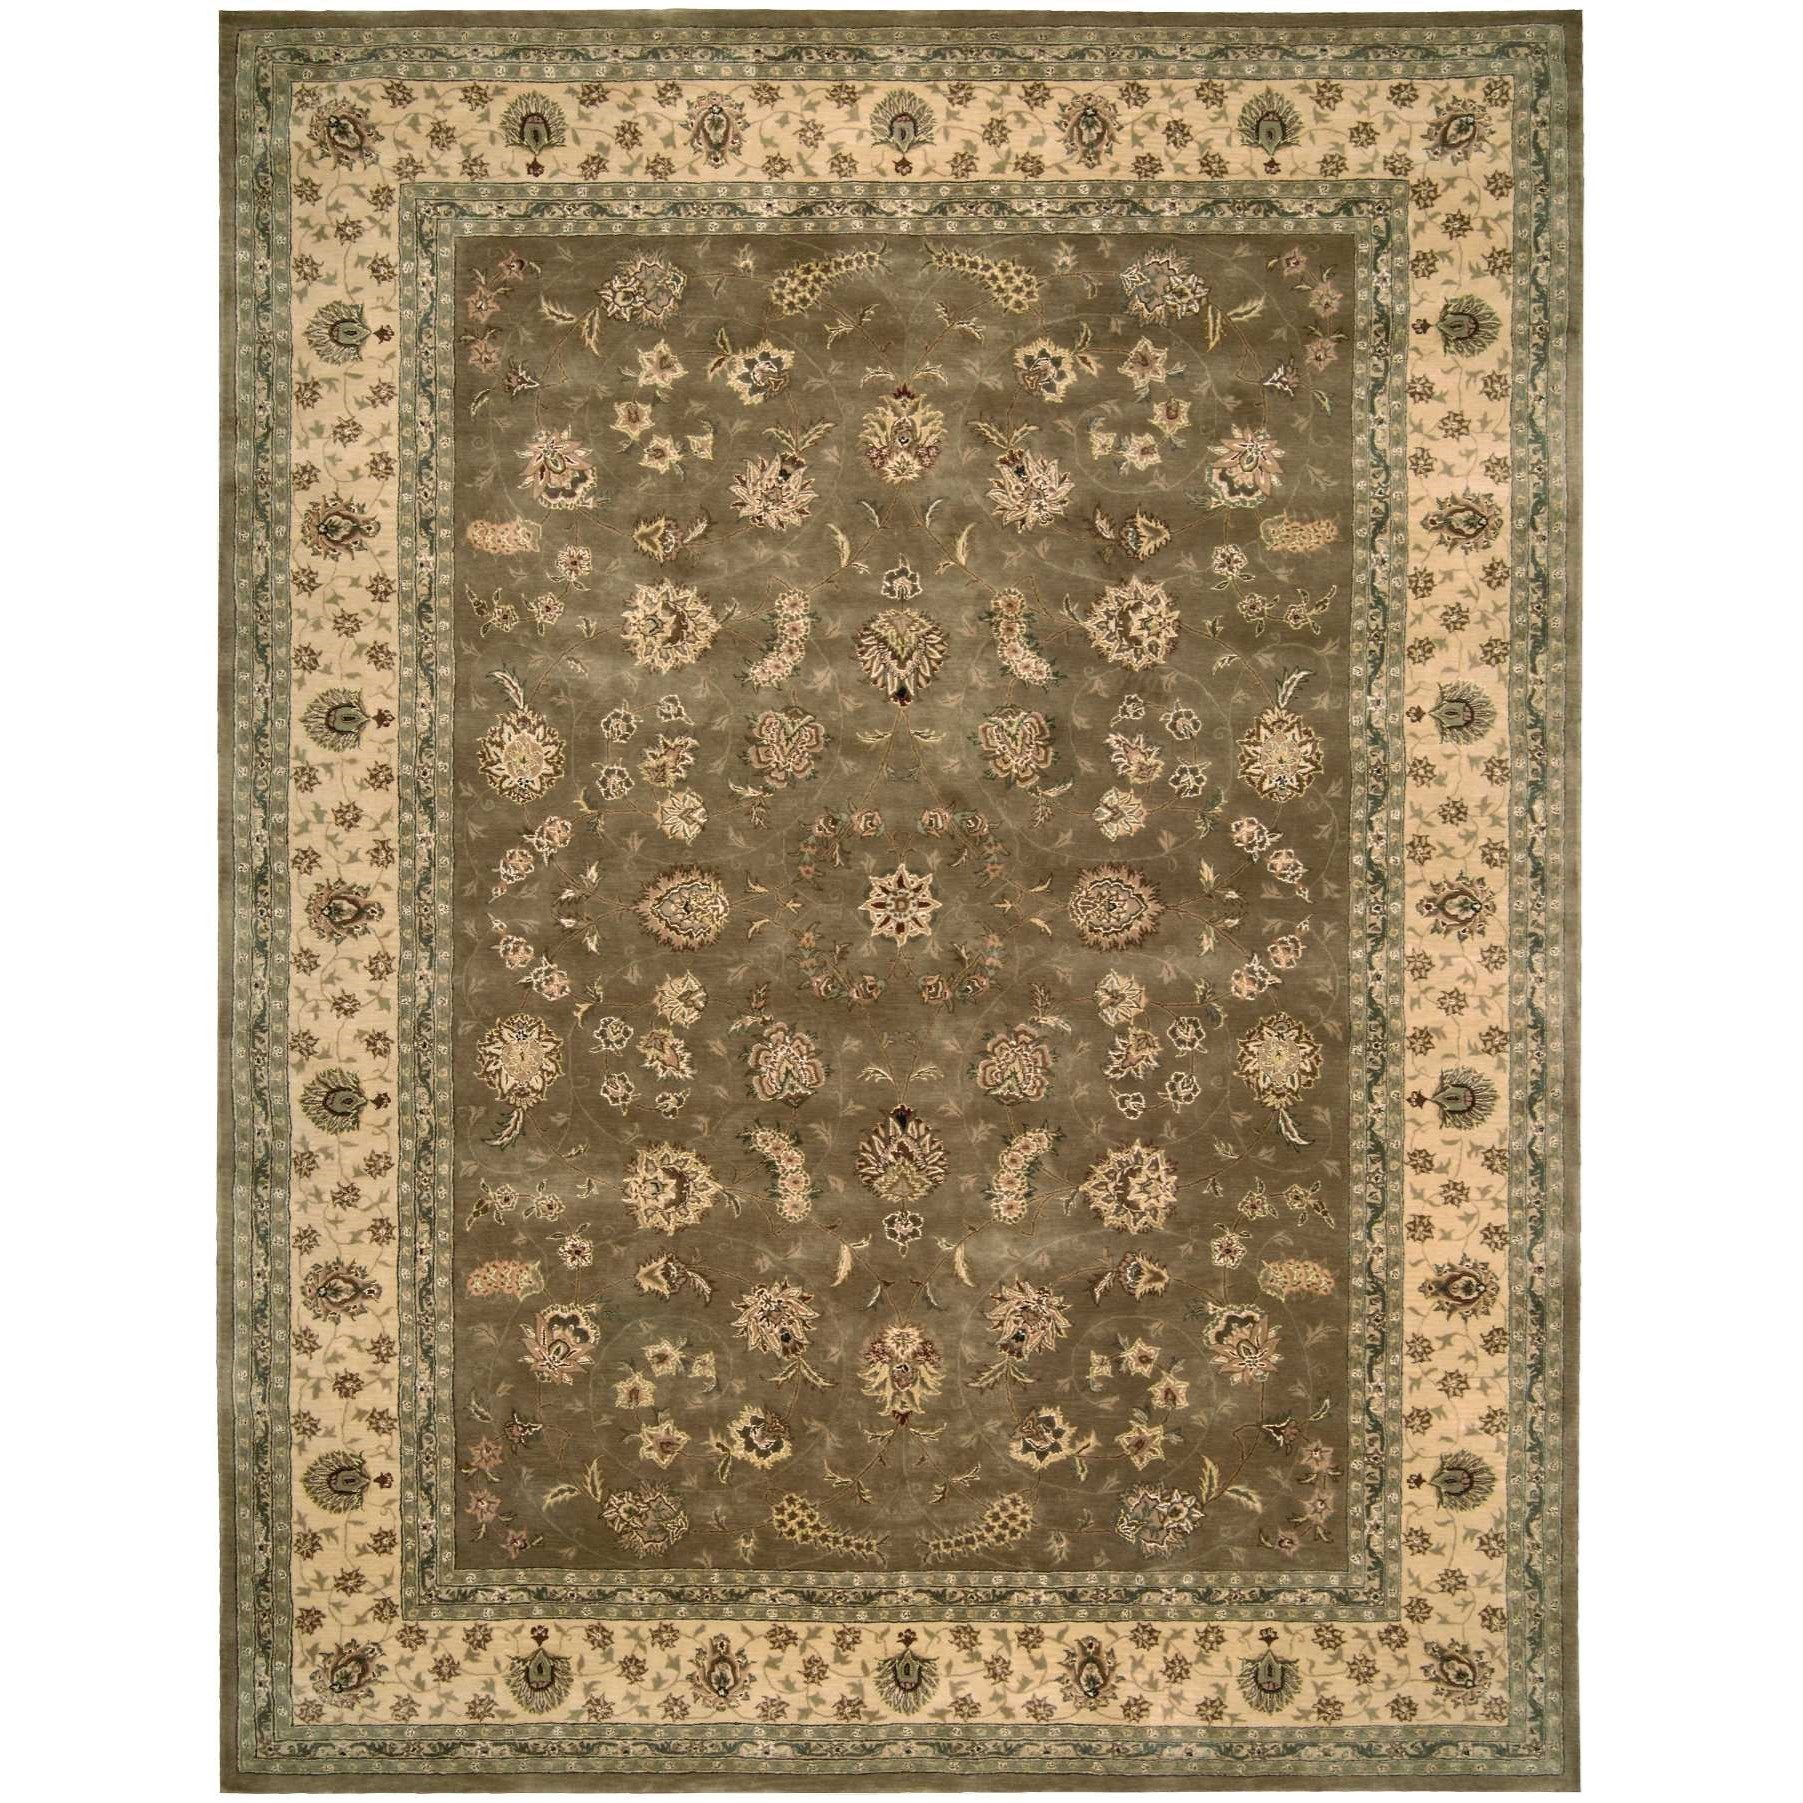 Nourison 2000 12' x 15' Olive Rectangle Rug by Nourison at Home Collections Furniture